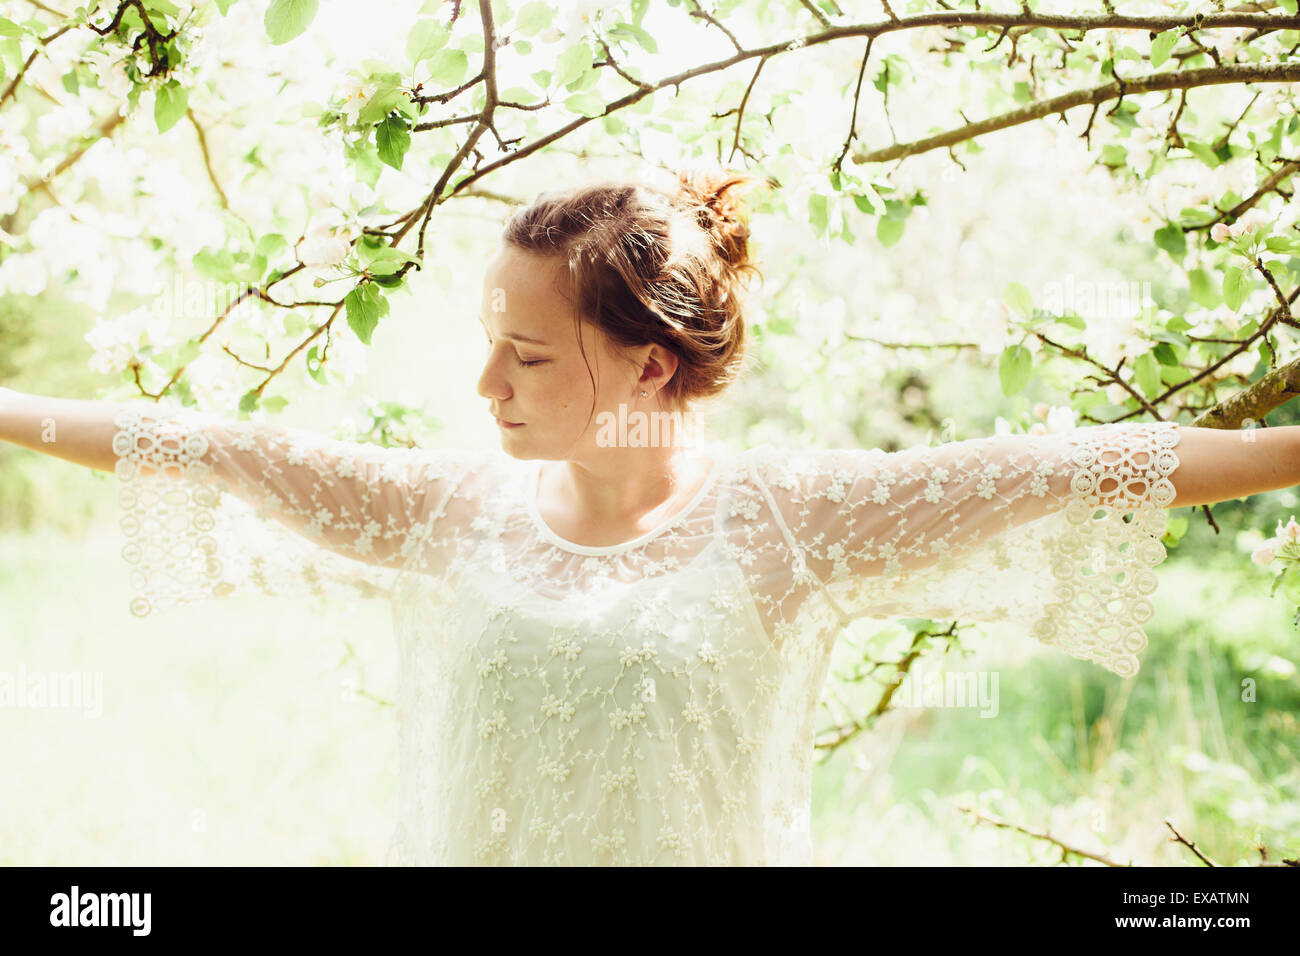 young woman happily in nature - Stock Image